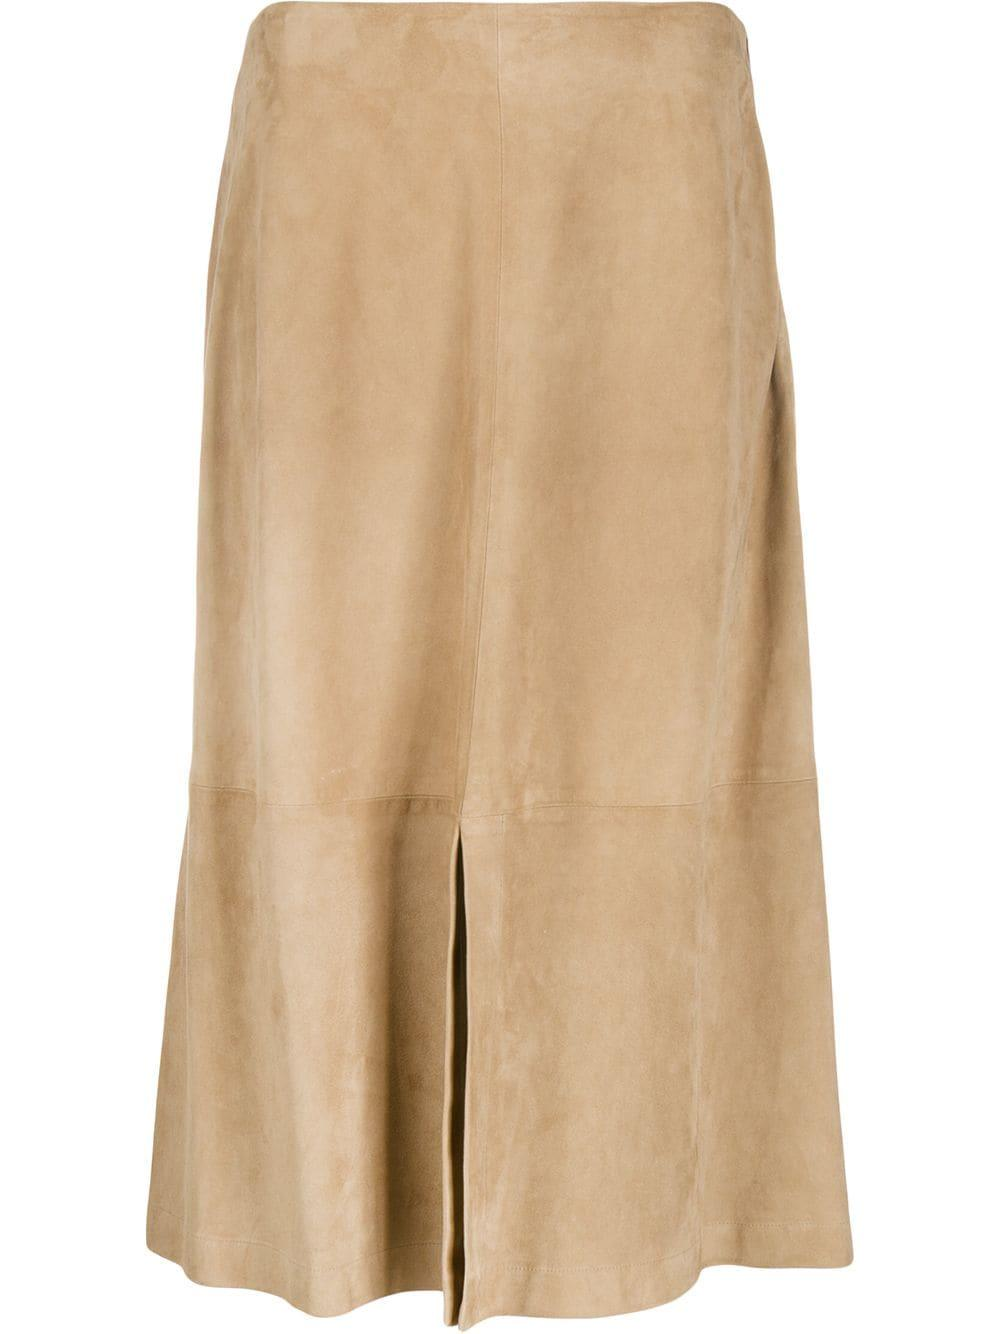 Suede Skirt With Front Slit